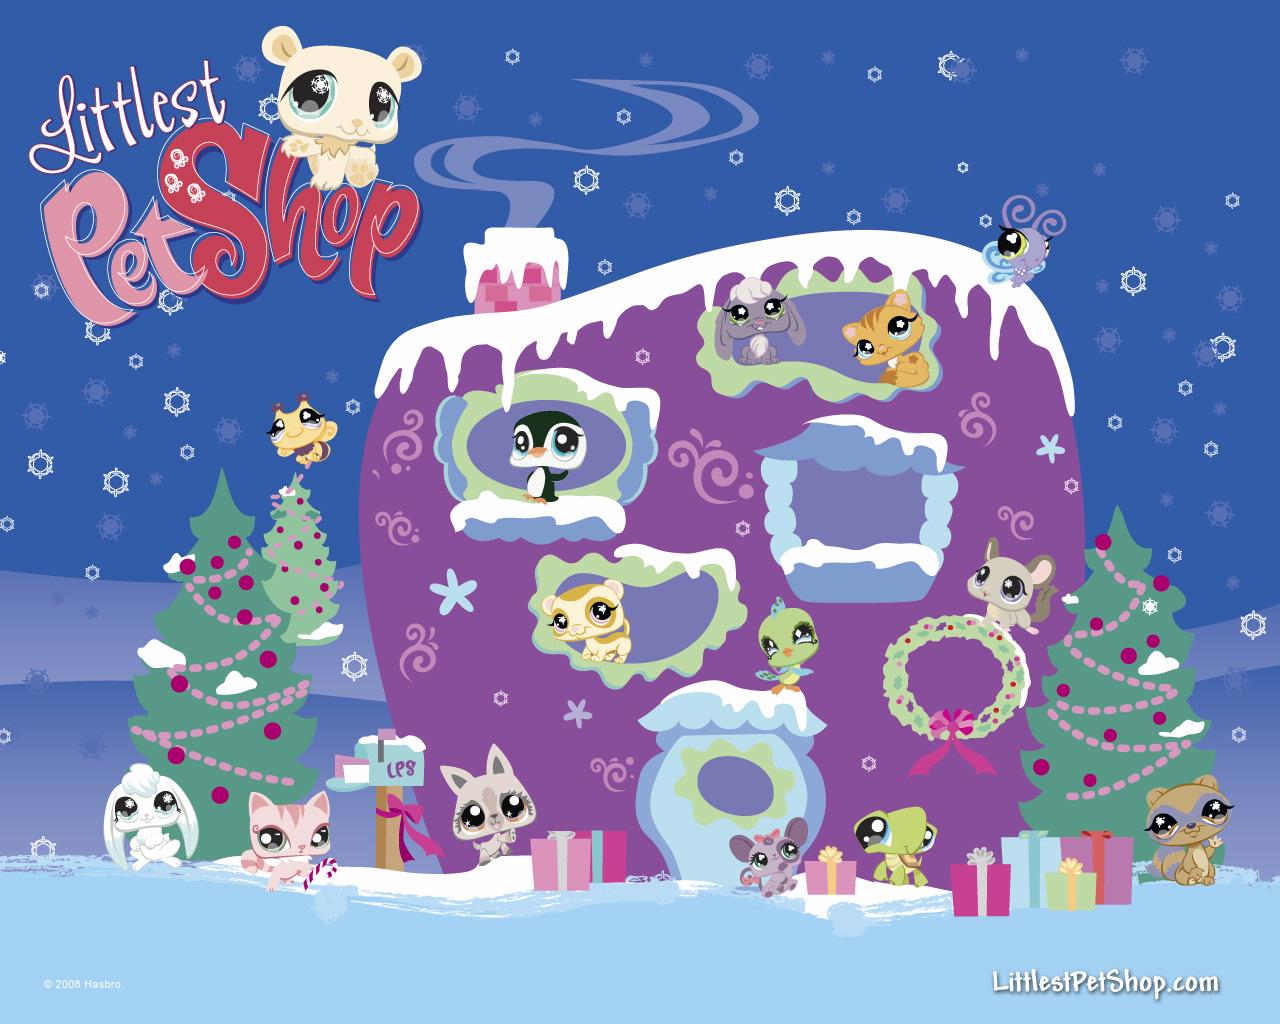 Download Littlest Pet Shop Wallpaper Online 1280x1024